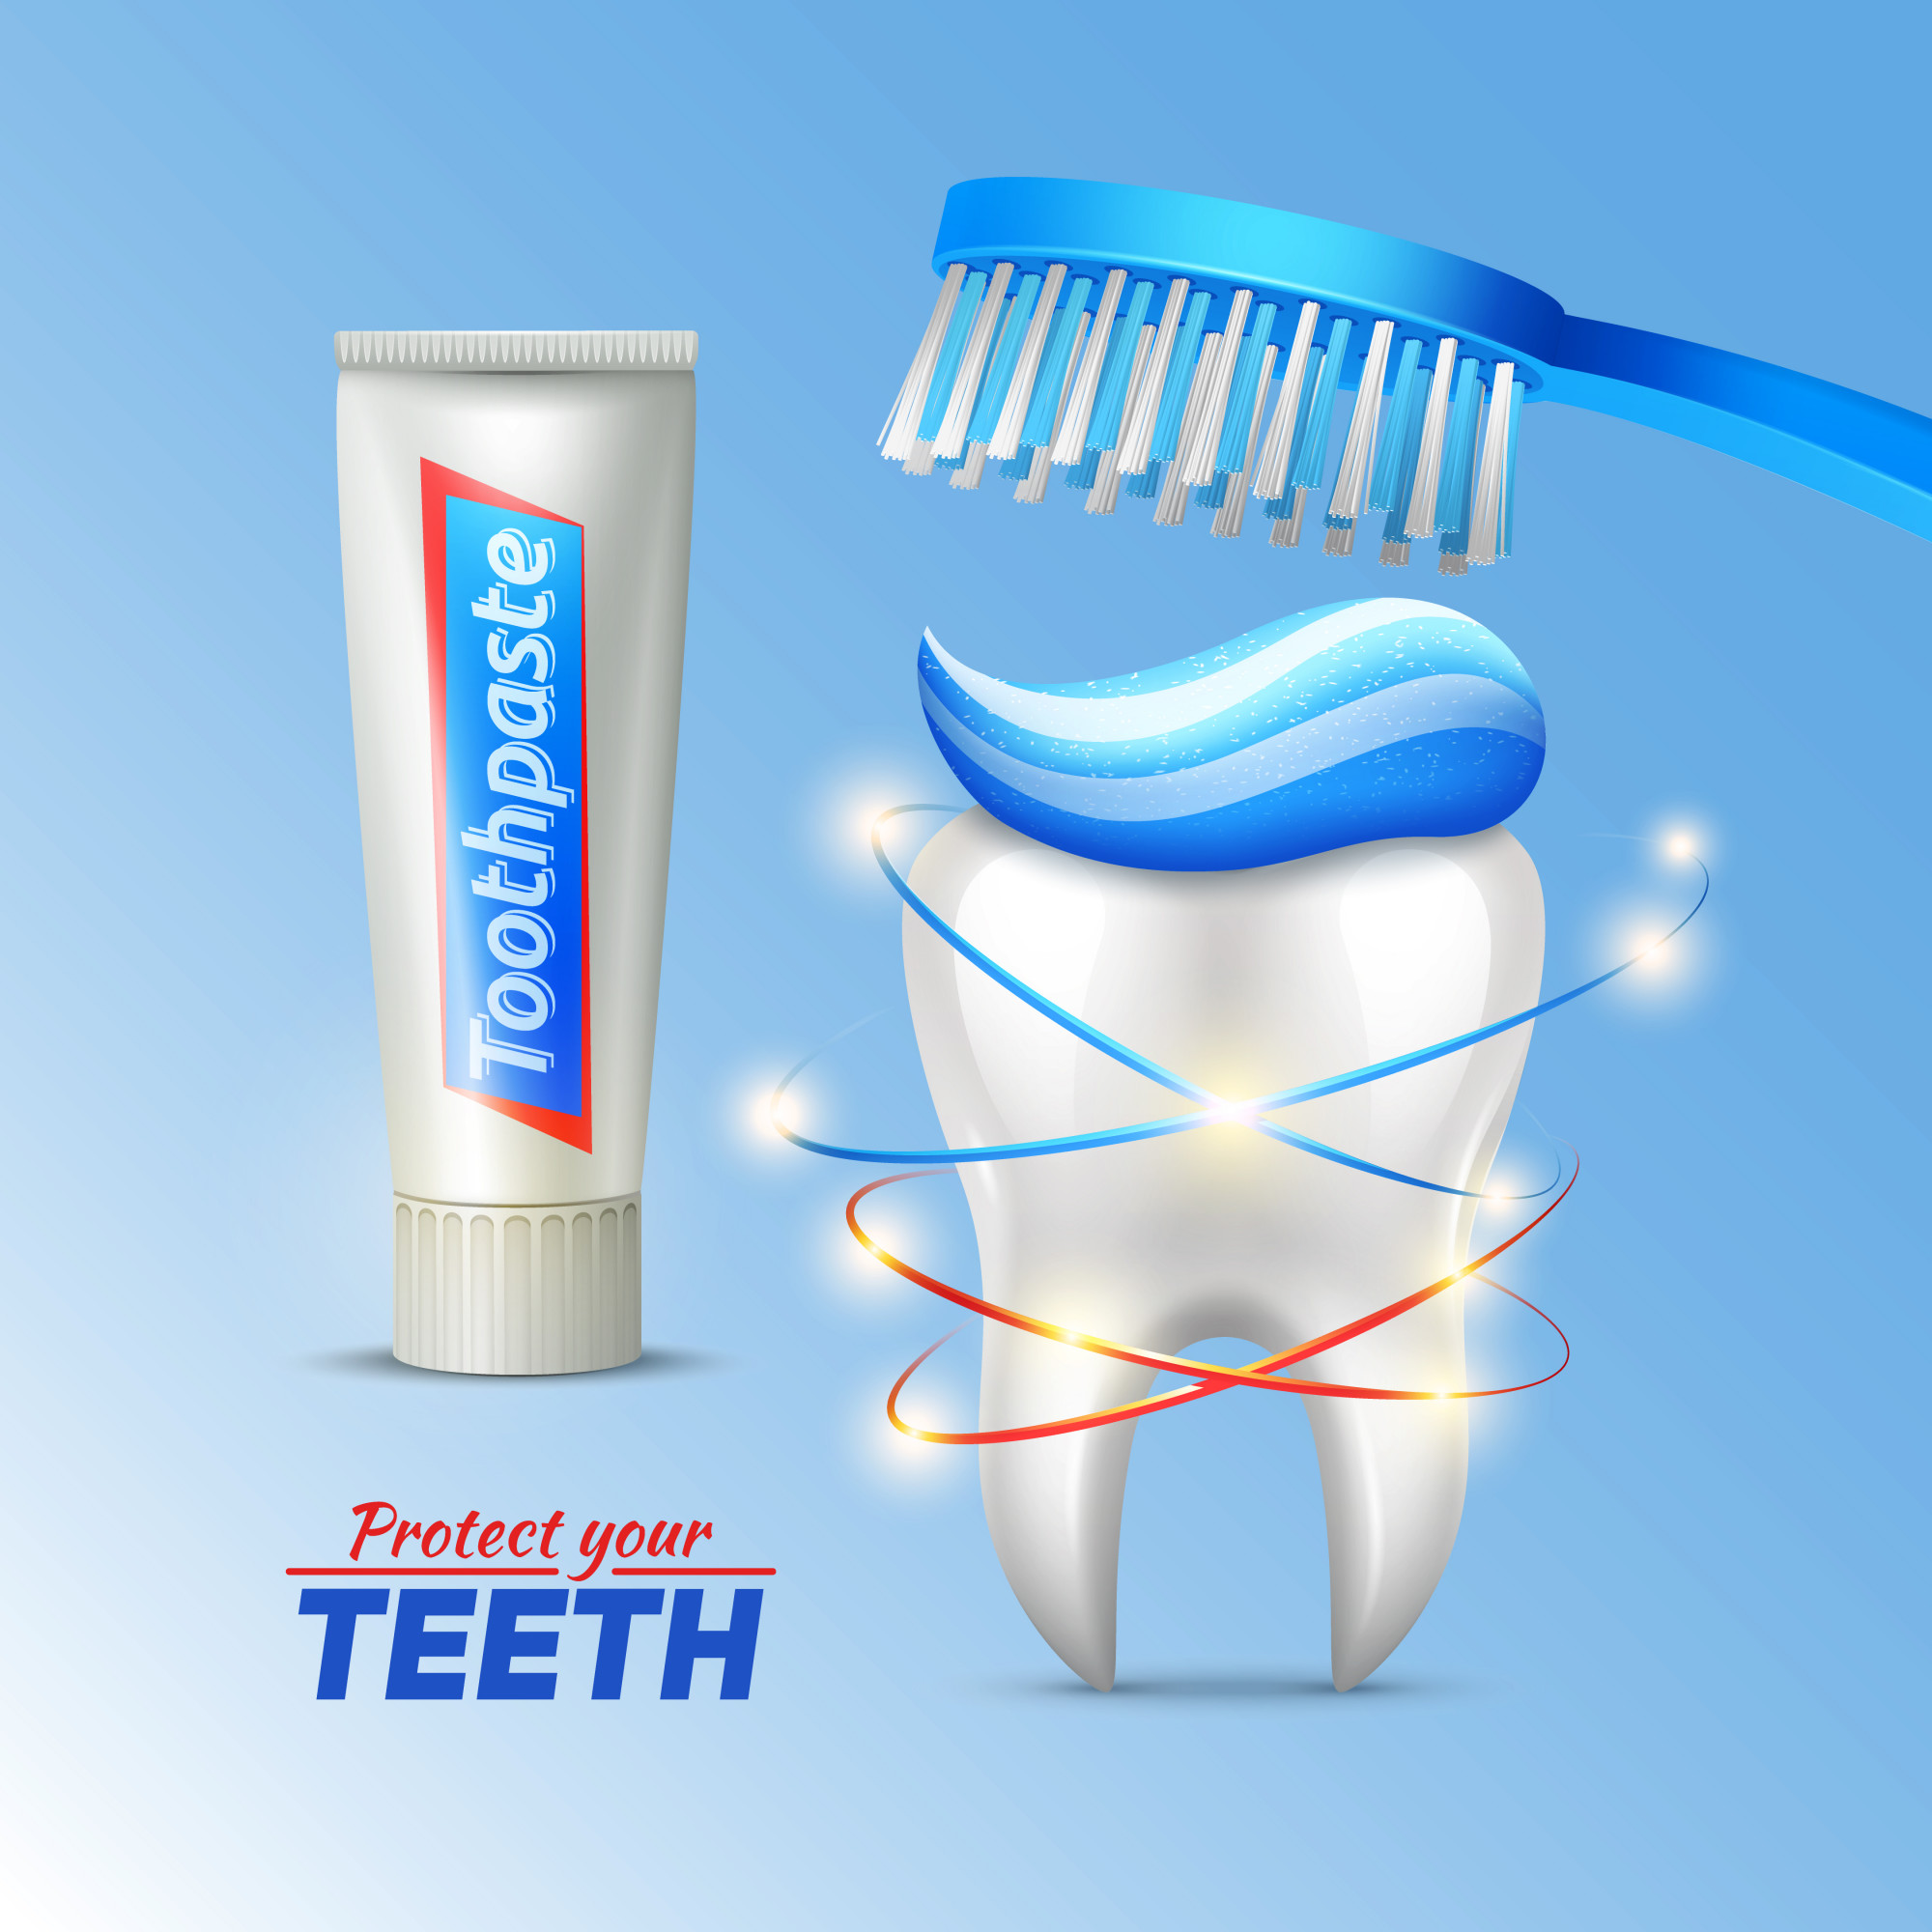 Dental hygiene concept with tooth toothbrush toothpaste and writing protect your teeth